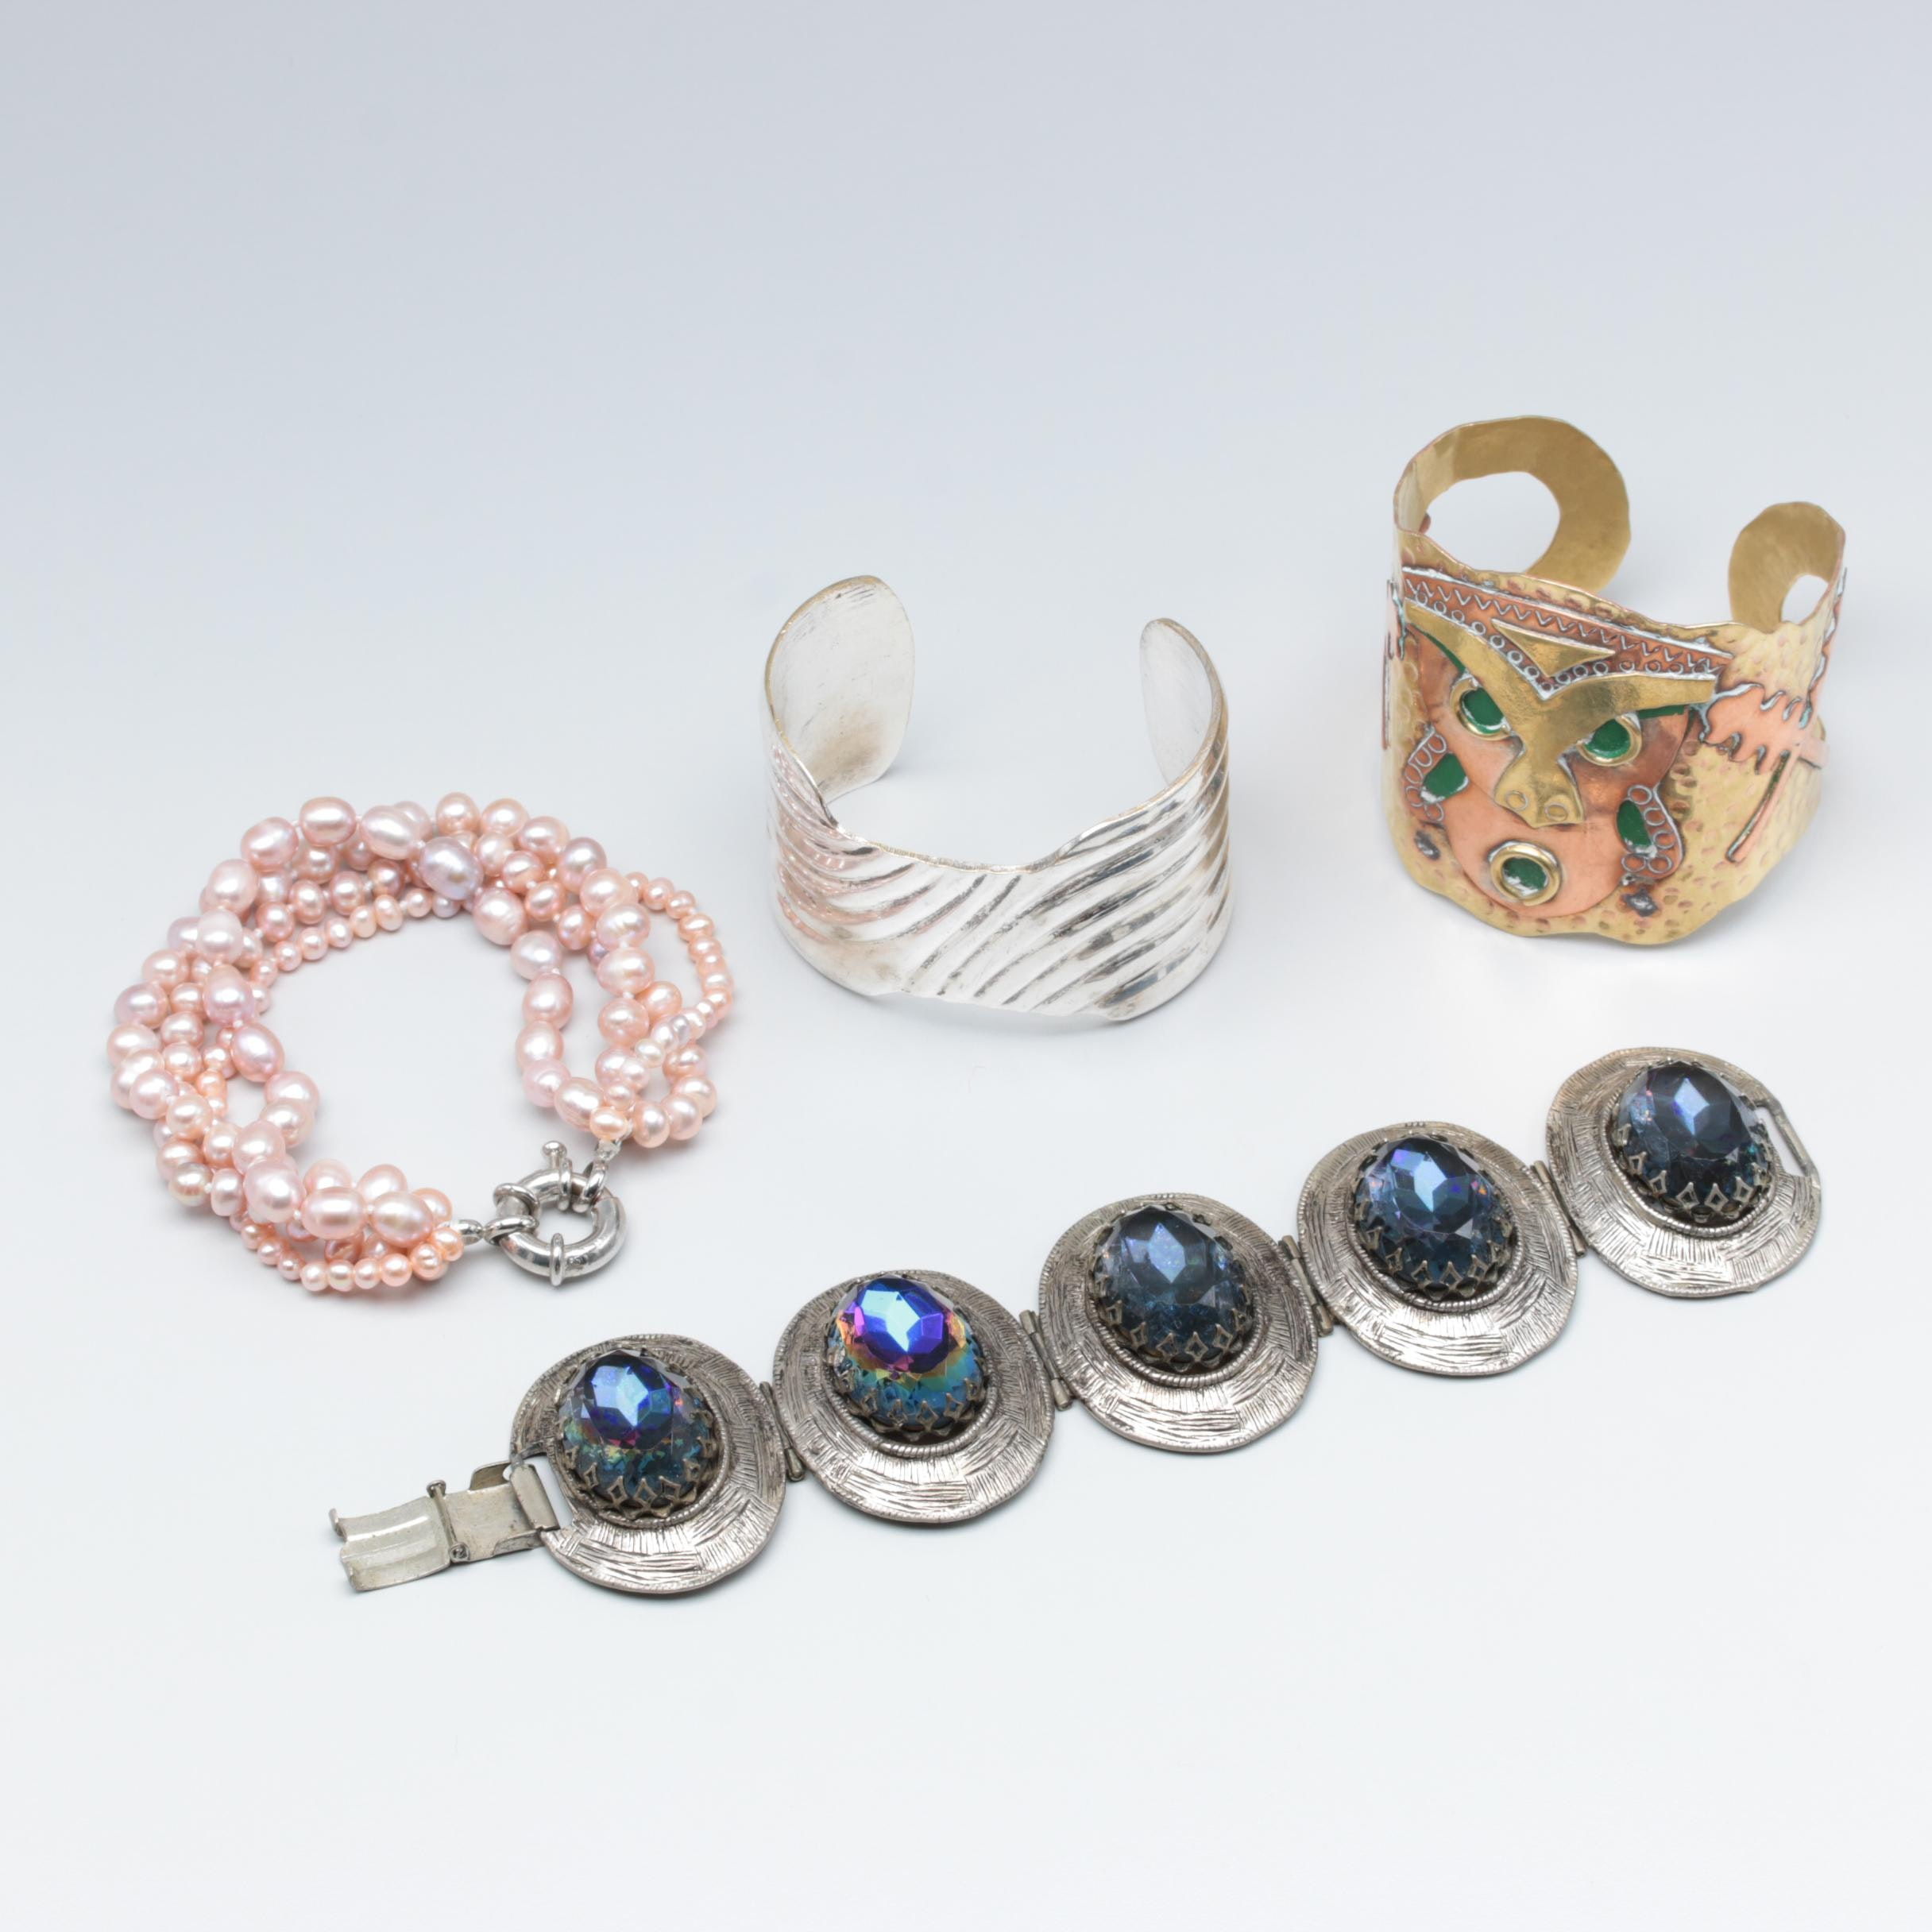 Assortment of Costume Cultured Pearl and Foilback Jewelry